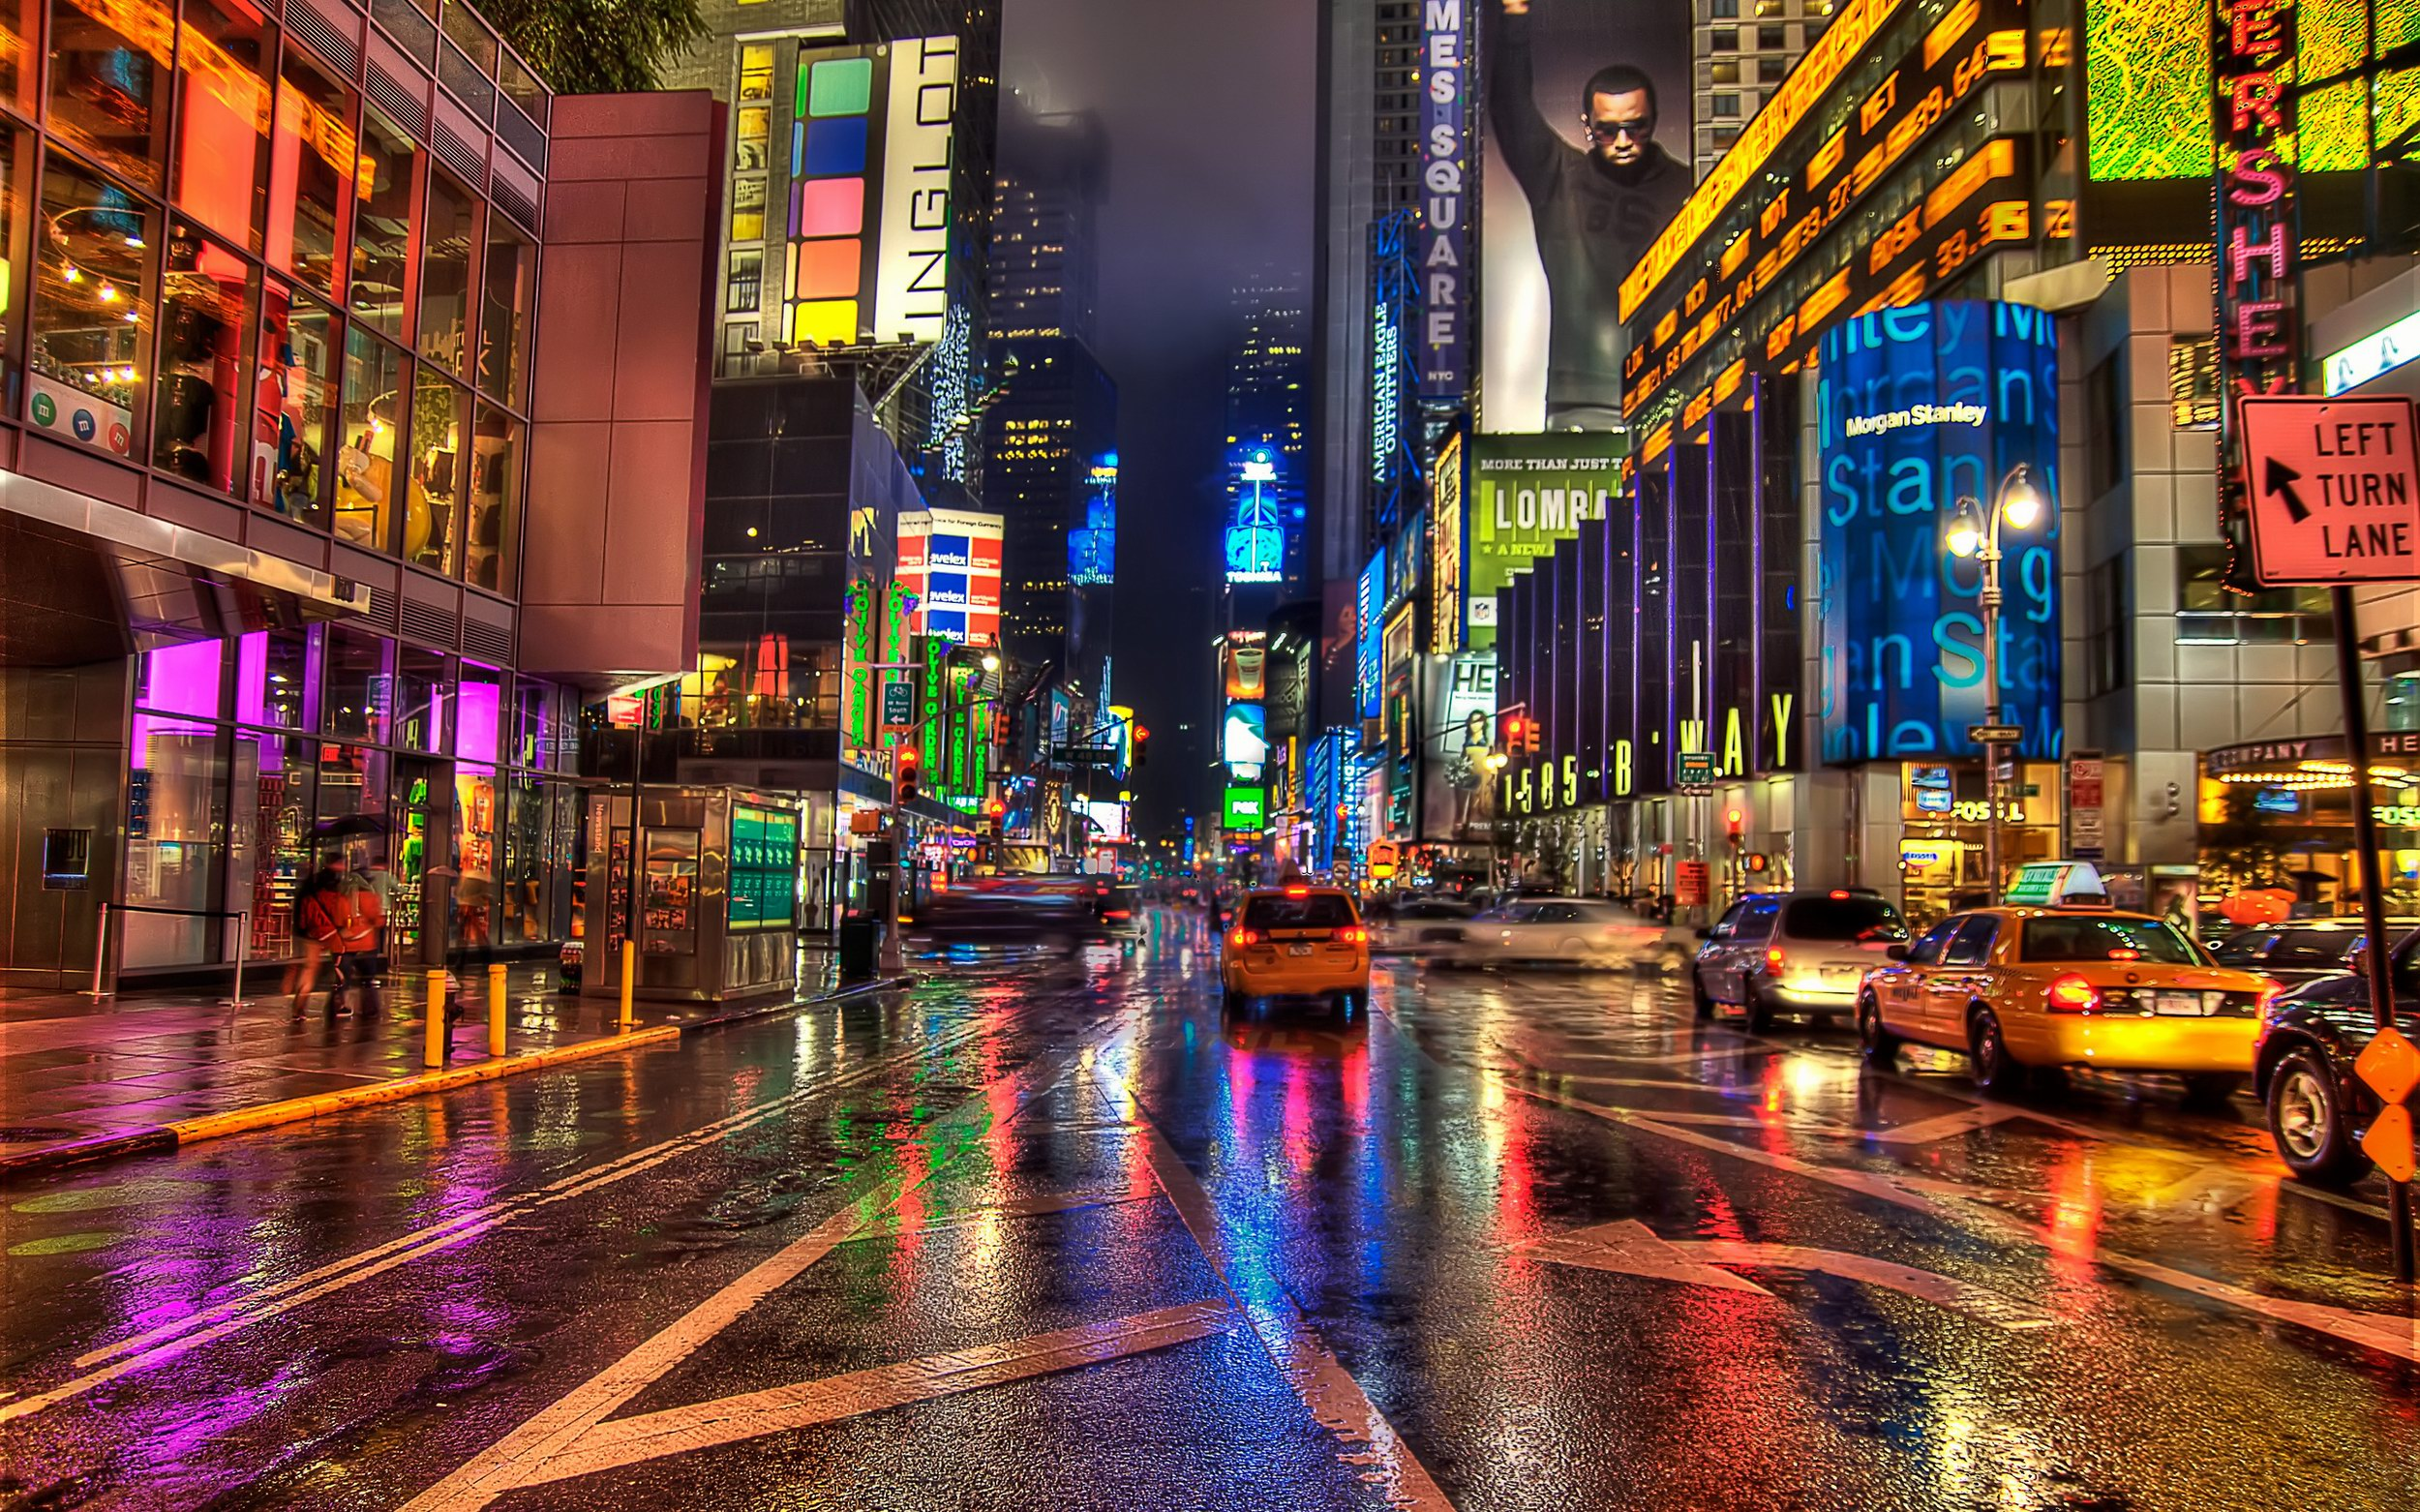 New York City Street HD Wallpaper 2500x1562